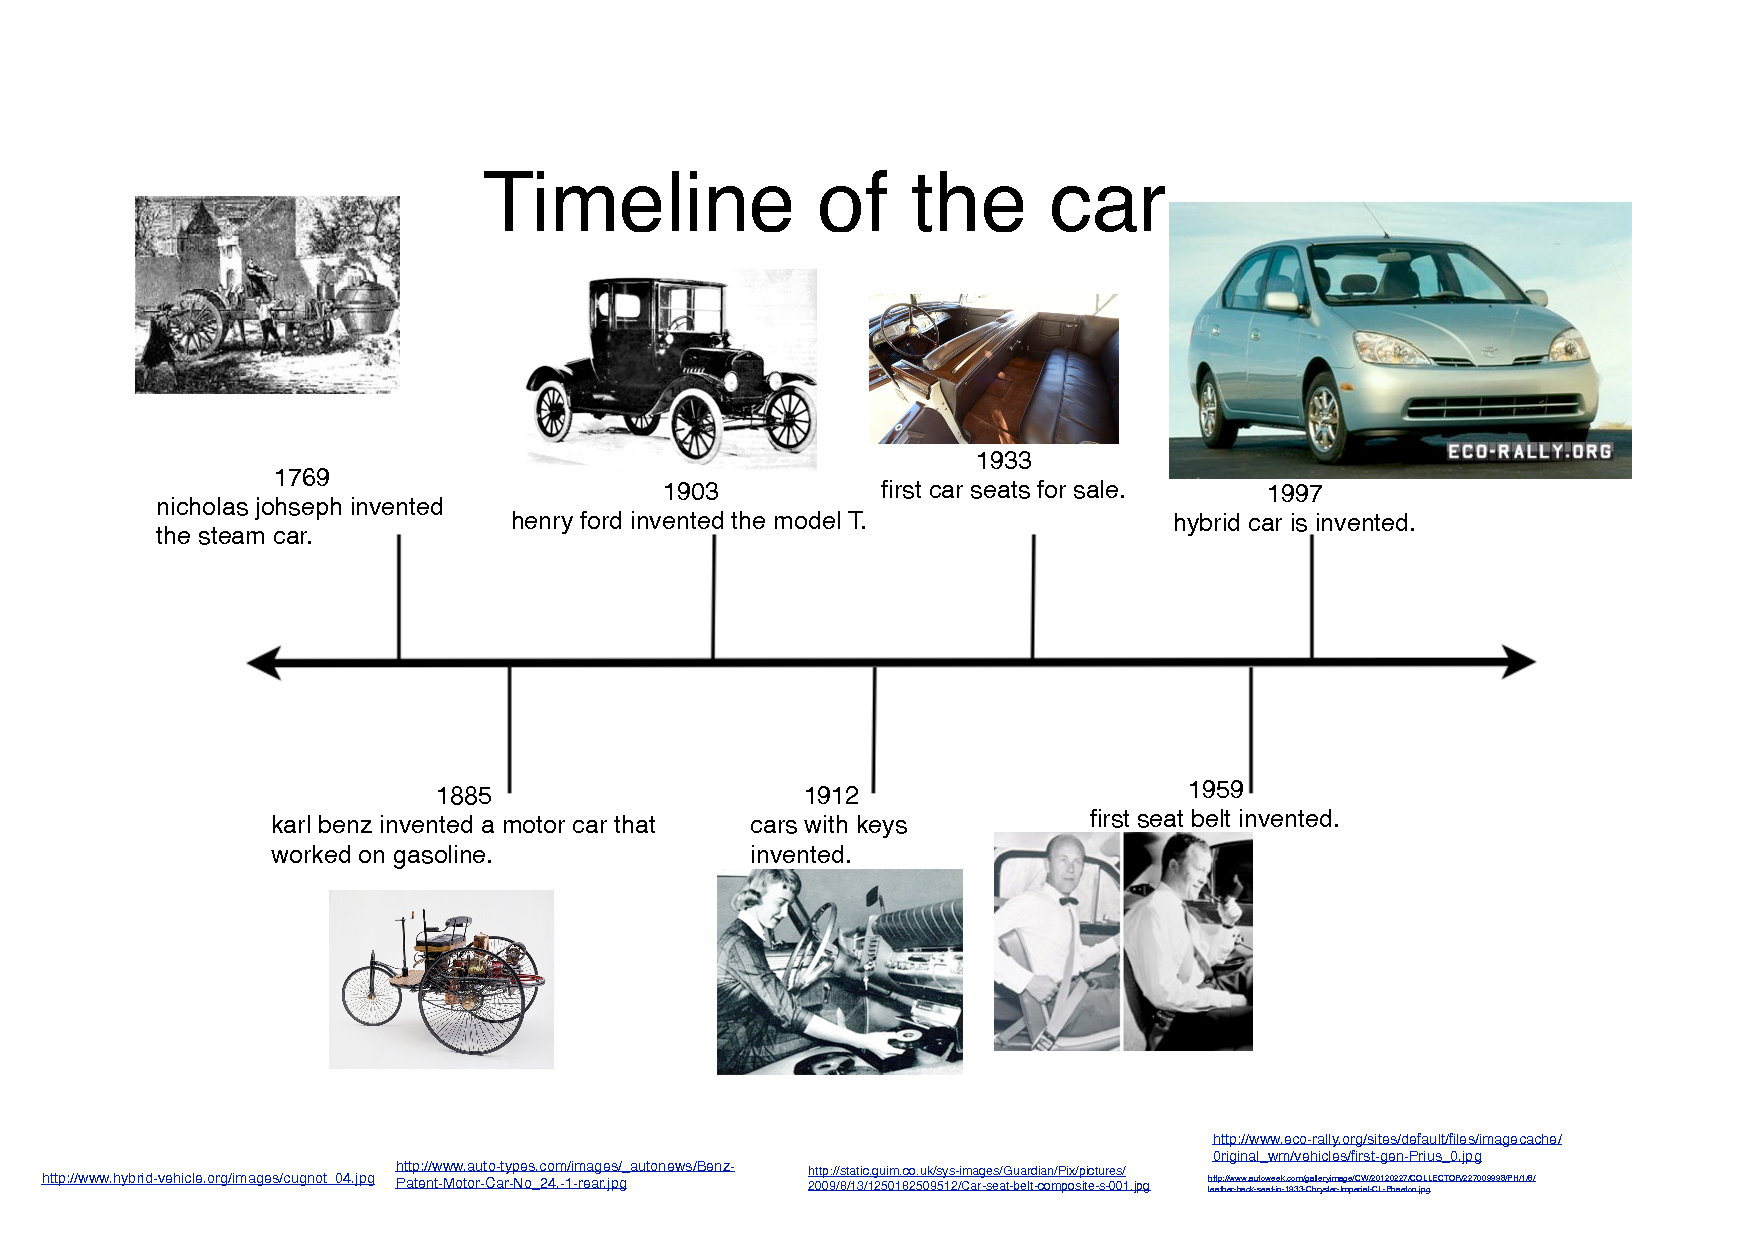 Automobile first motor car timeline of the car kidblog for History of the electric motor